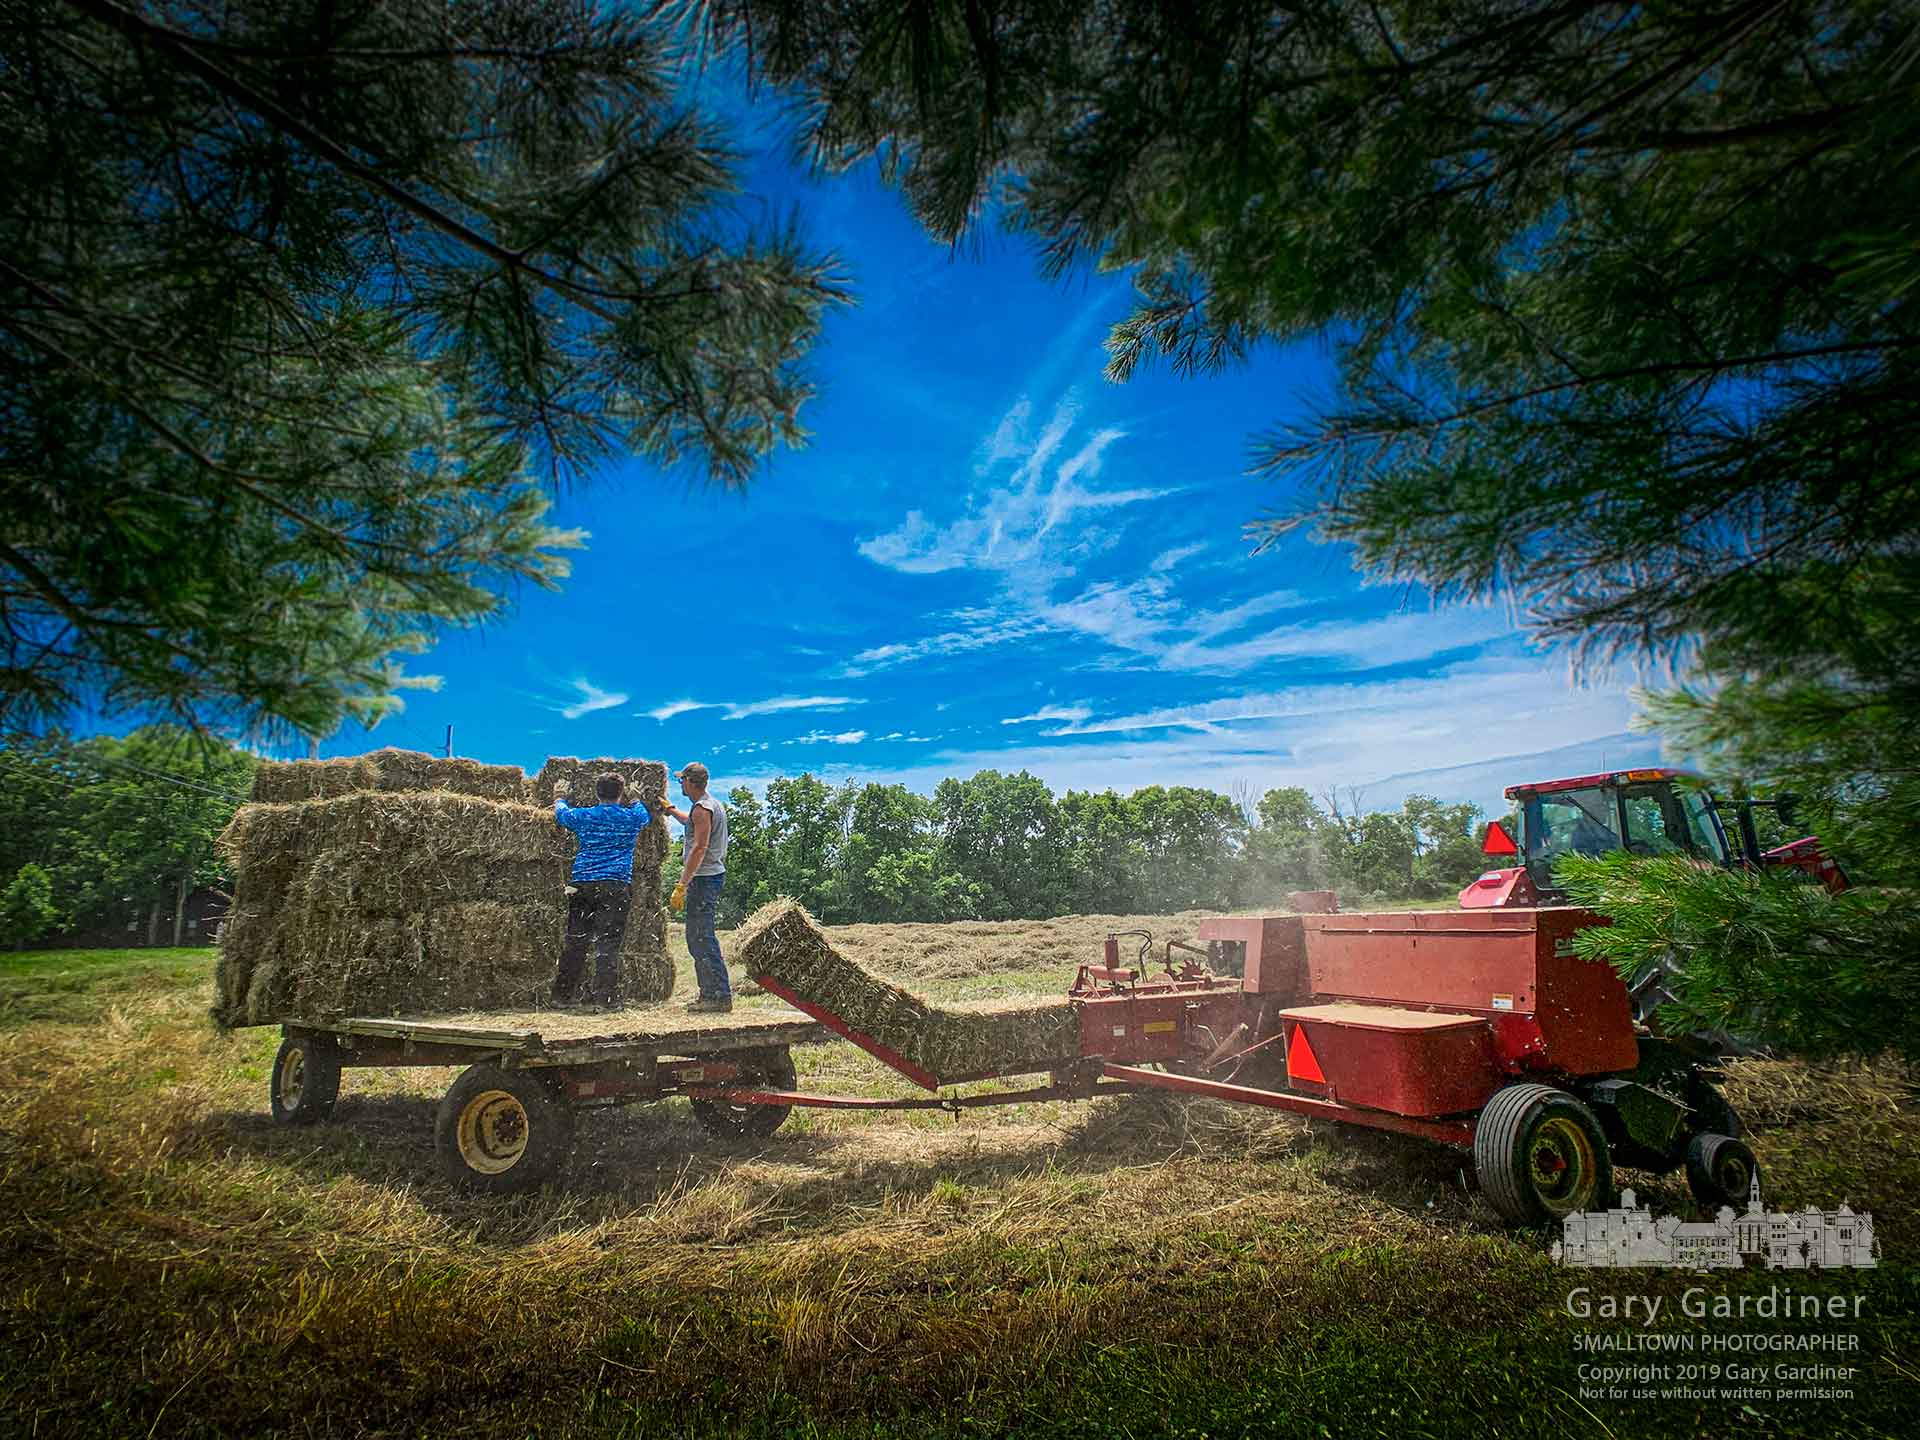 A pair of farmhands load hay bales onto a wagon pulled behind Kevin Scott's tractor at a field on North West Street where developers are planning to build office buildings and apartments after the planning commission and city council approve a design that meets zoning and density requirements. My Final Photo for June 23, 2019.